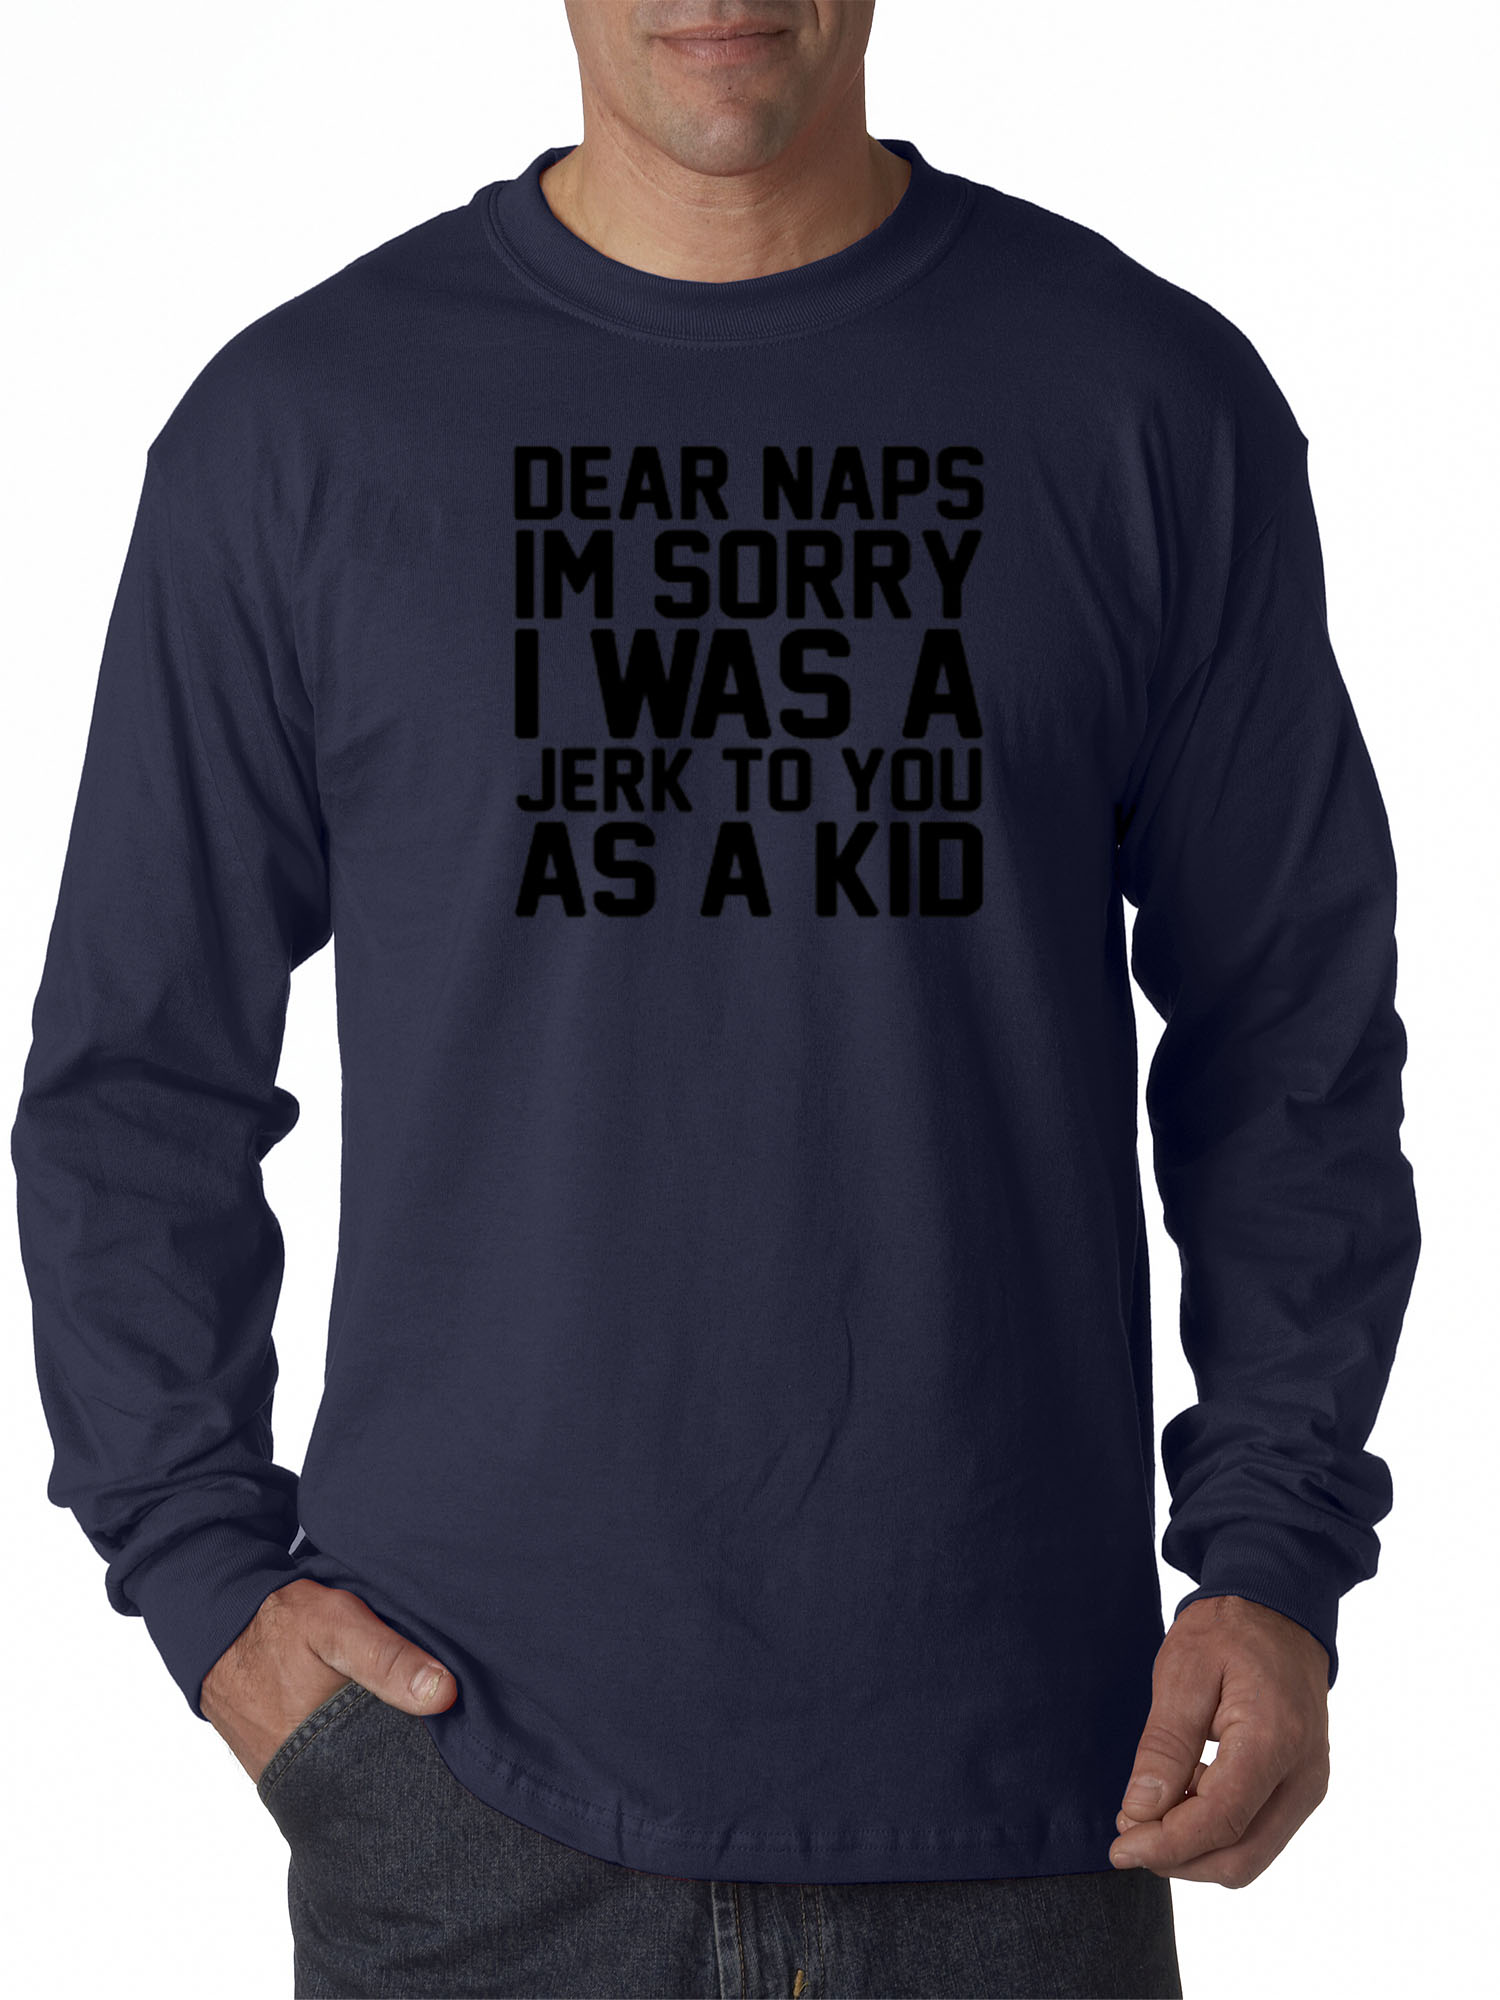 New Way 115 - Unisex Long-Sleeve T-Shirt Dear Naps I'm Sorry I Was A Jerk To You As A Kid